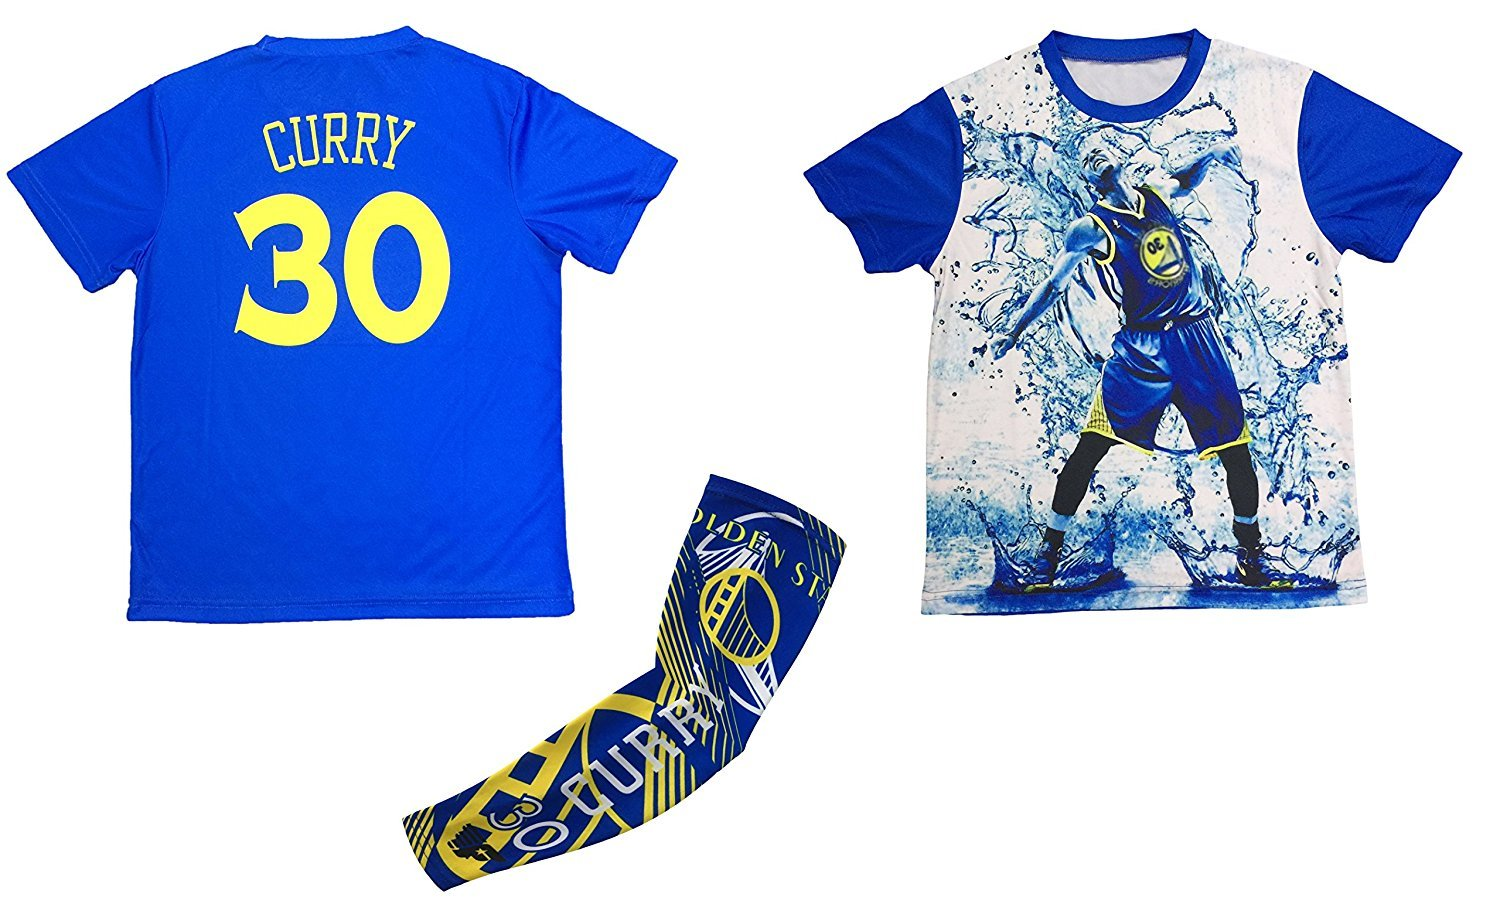 sale retailer 66514 e86cb Details about Steph Curry Jersey Style T-shirt Kids Curry Blue T-shirt Gift  Set Youth Sizes...